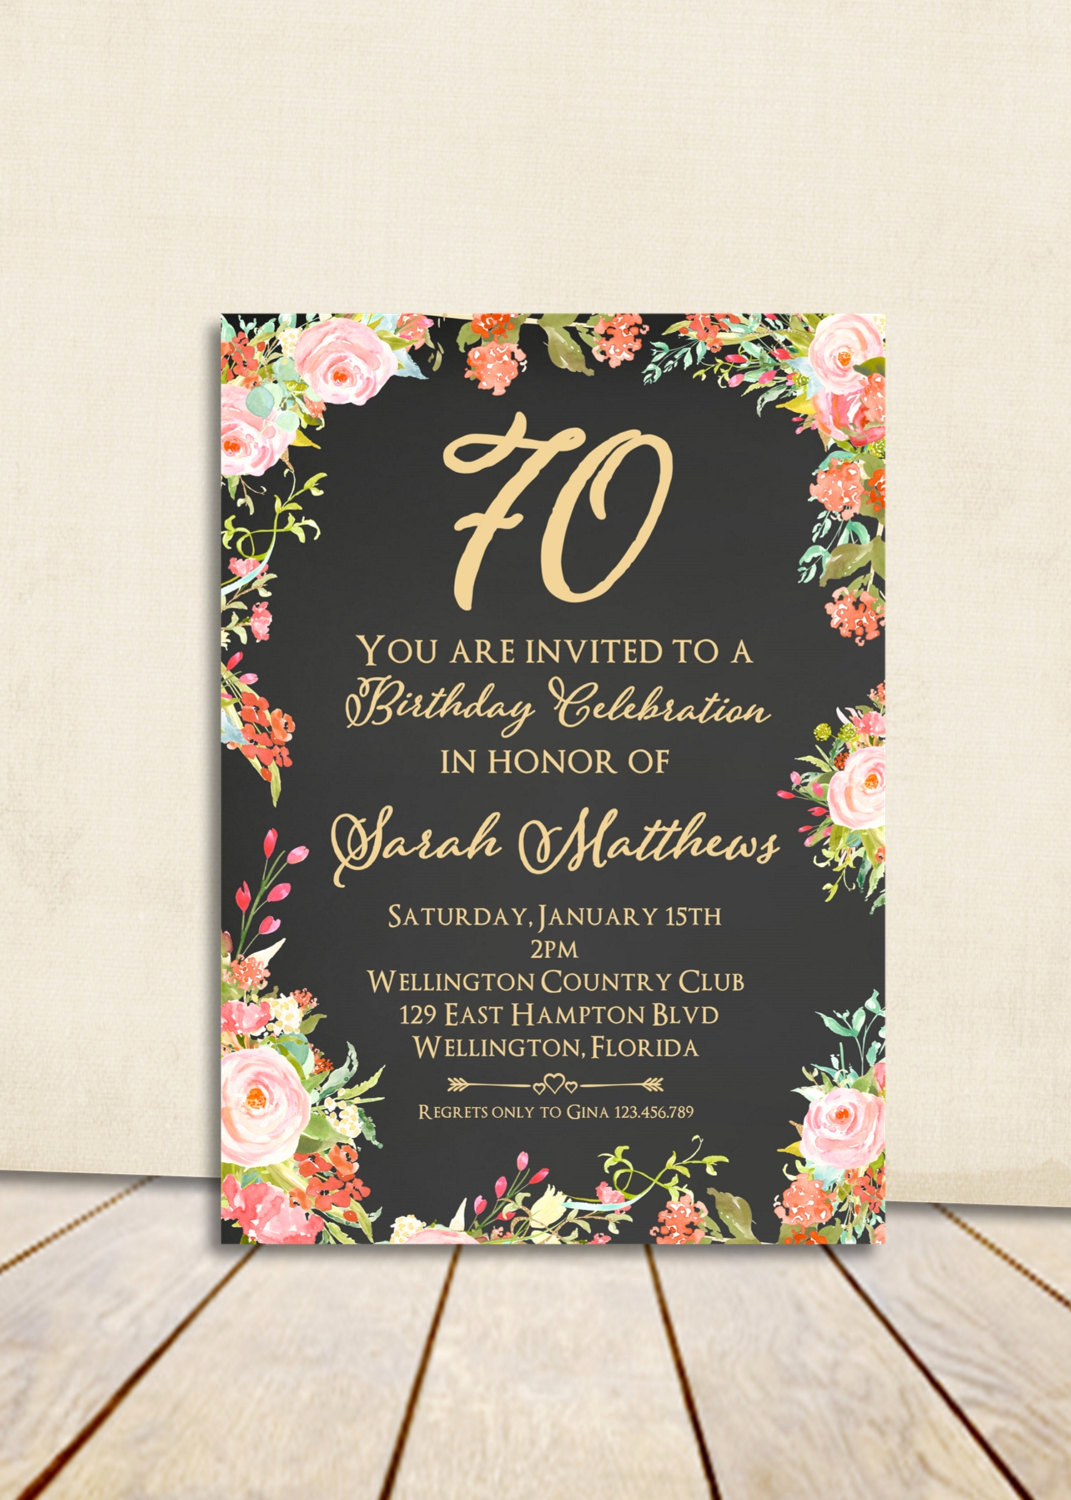 Suprise Birthday Party Invitation New 80th Birthday Invitation Surprise Birthday Adult Birthday